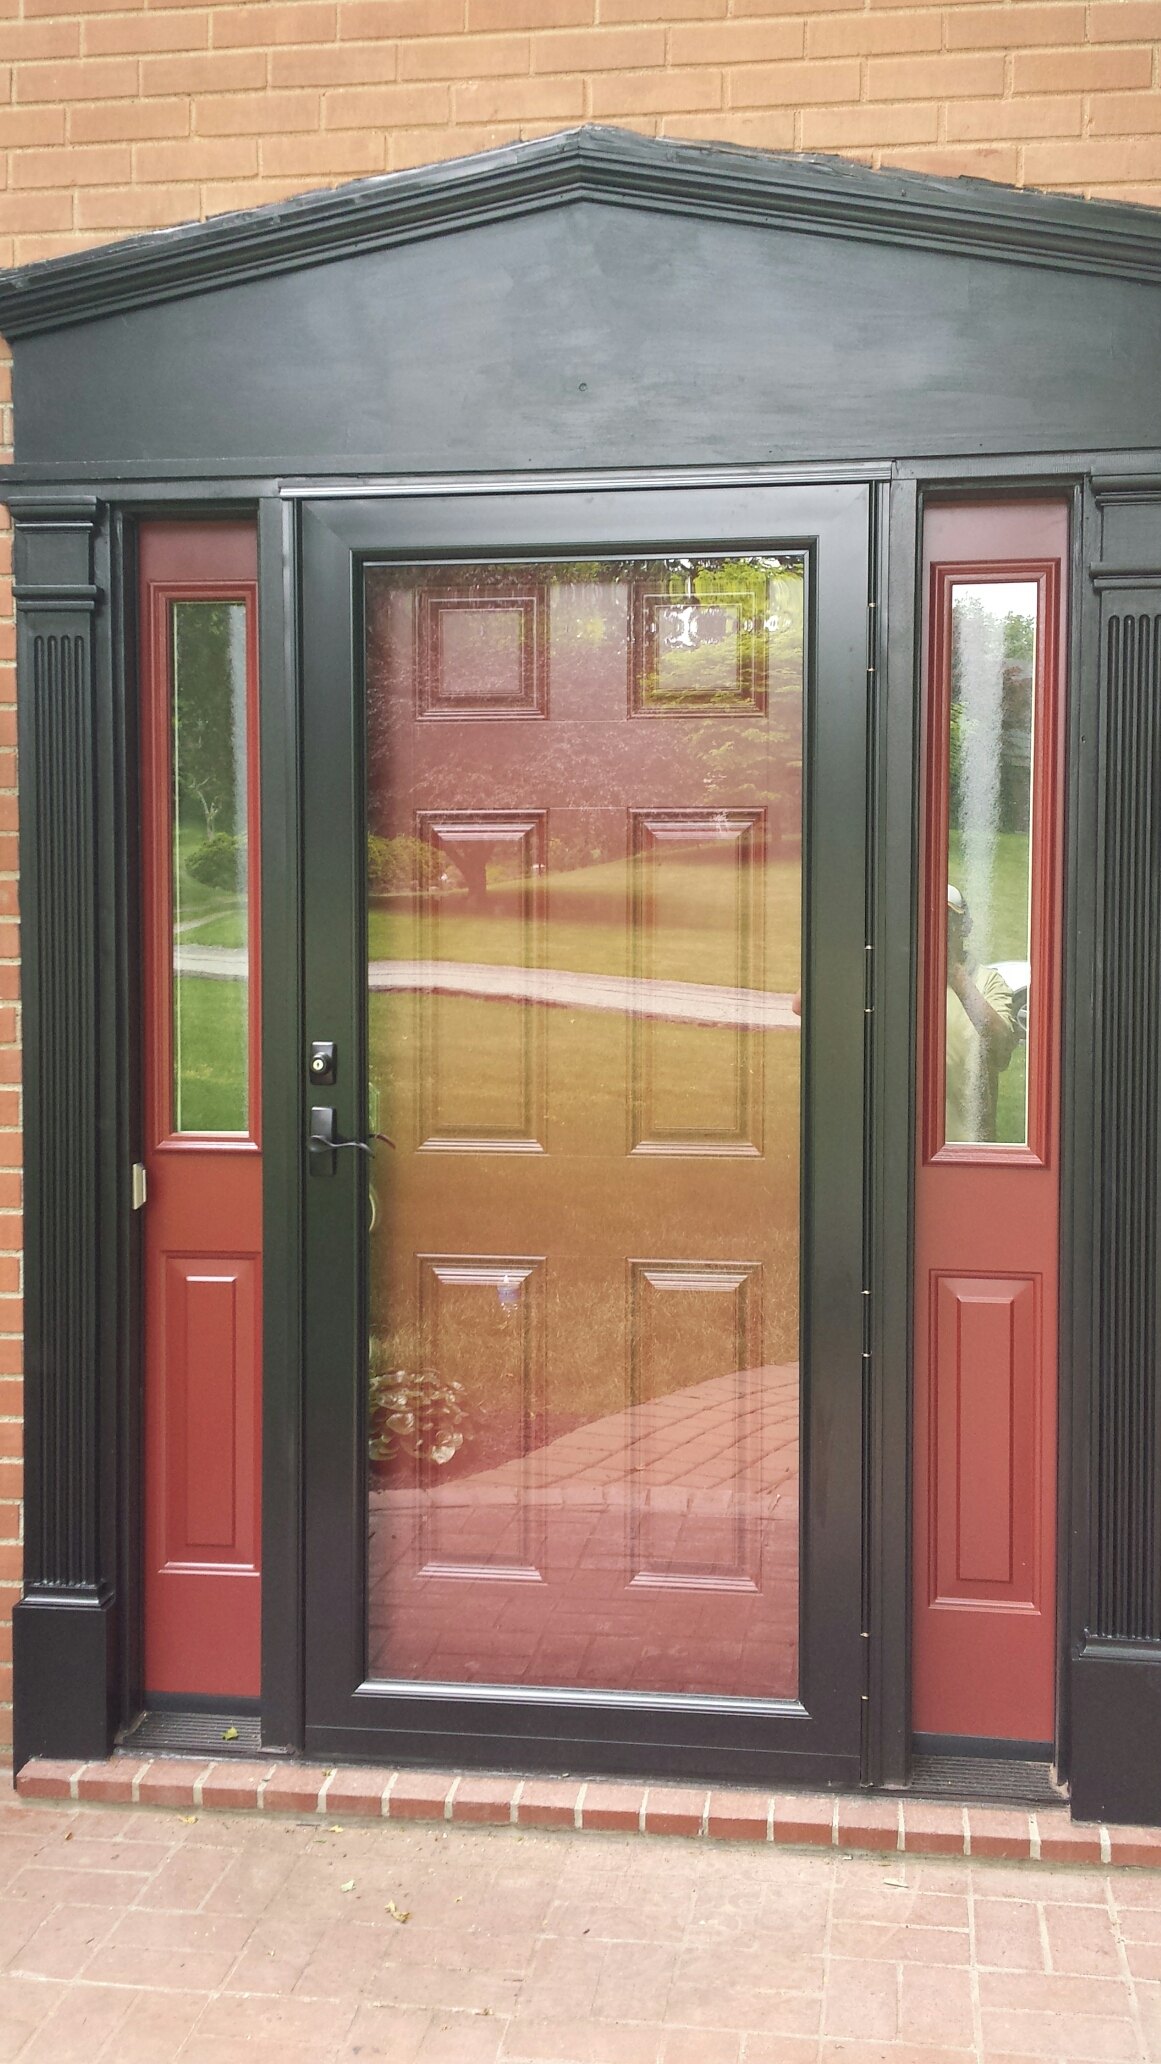 Pittsburgh, PA - New Provia entry door with sidelites  and storm door from Renewal by Andersen.  Security and beauty for years to come.